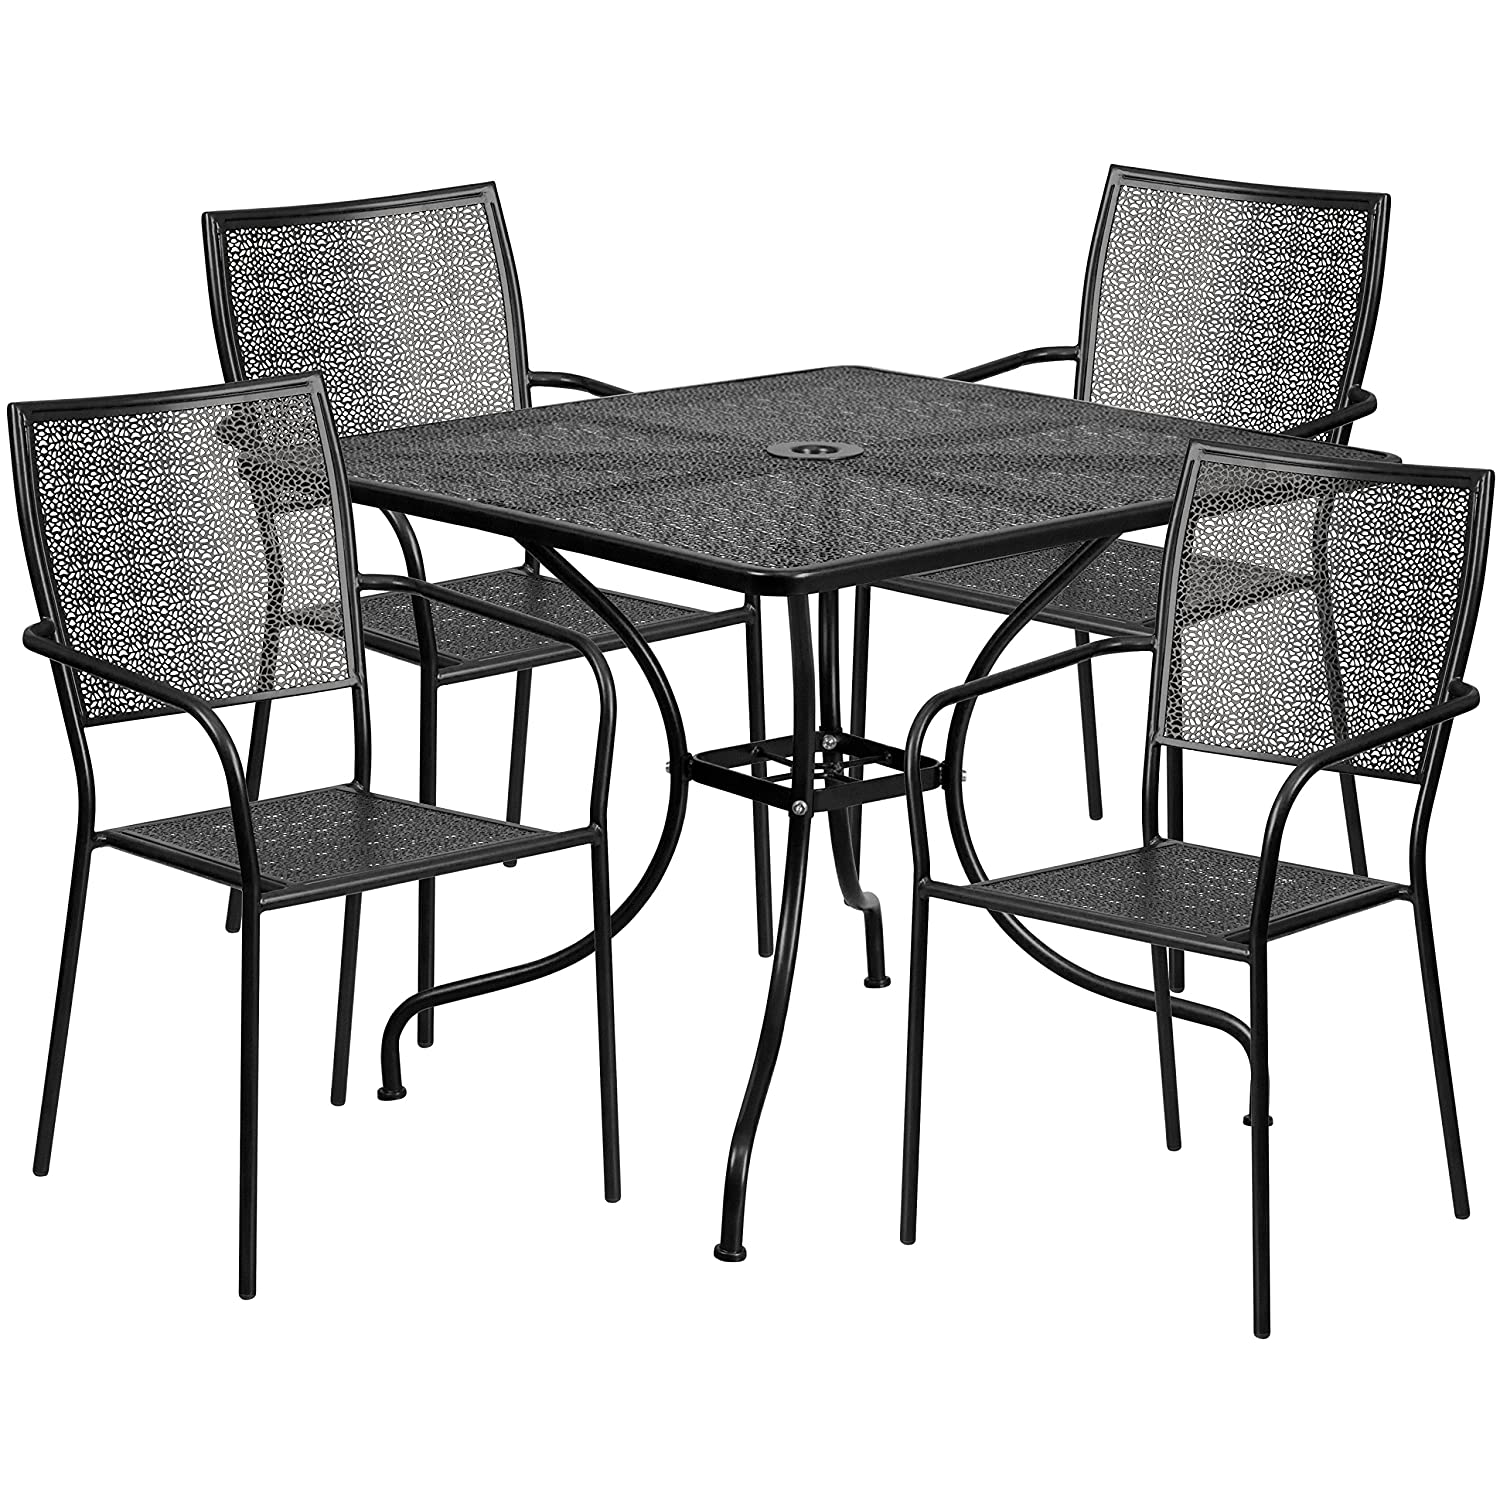 Flash Furniture 35.5 Square Black Indoor-Outdoor Steel Patio Table Set with 4 Square Back Chairs